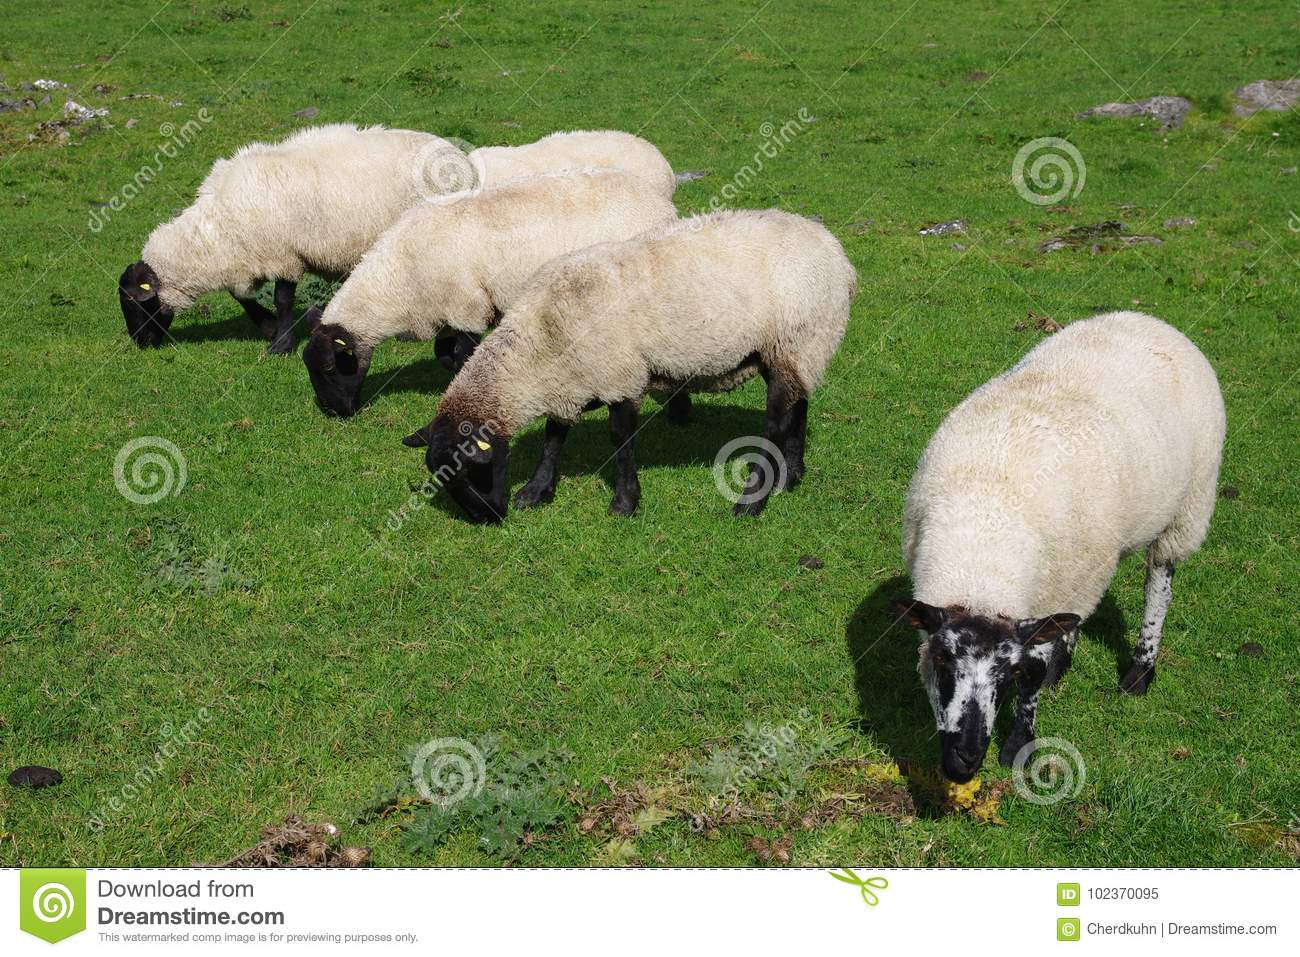 Five Sheep Grazing In The Meadow Stock Image - Image of grass, black ... for Sheep Face Black And White  186ref